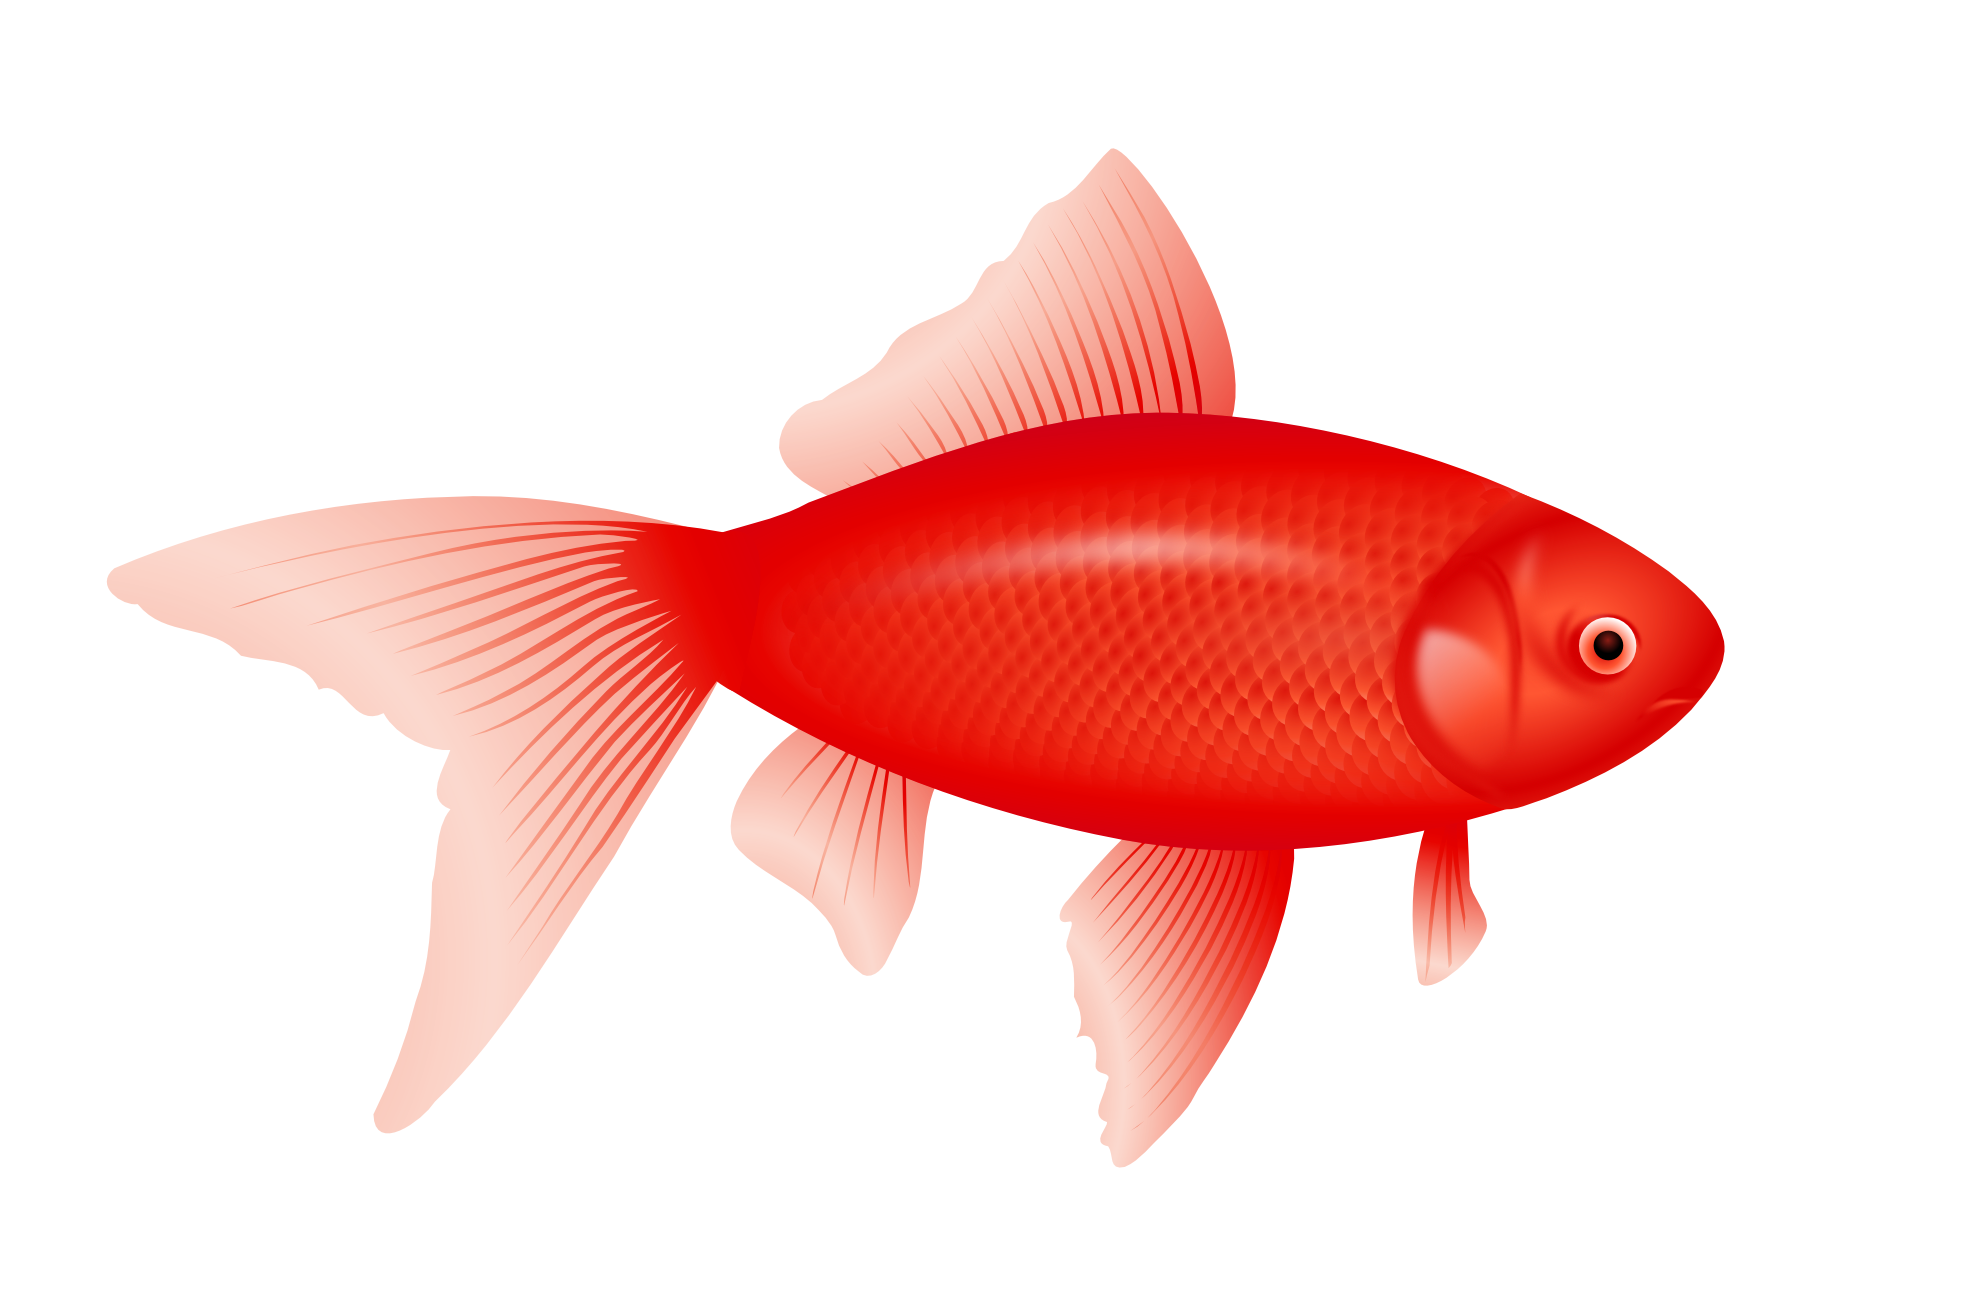 Red Fish Png Image   Red Fish Png Image